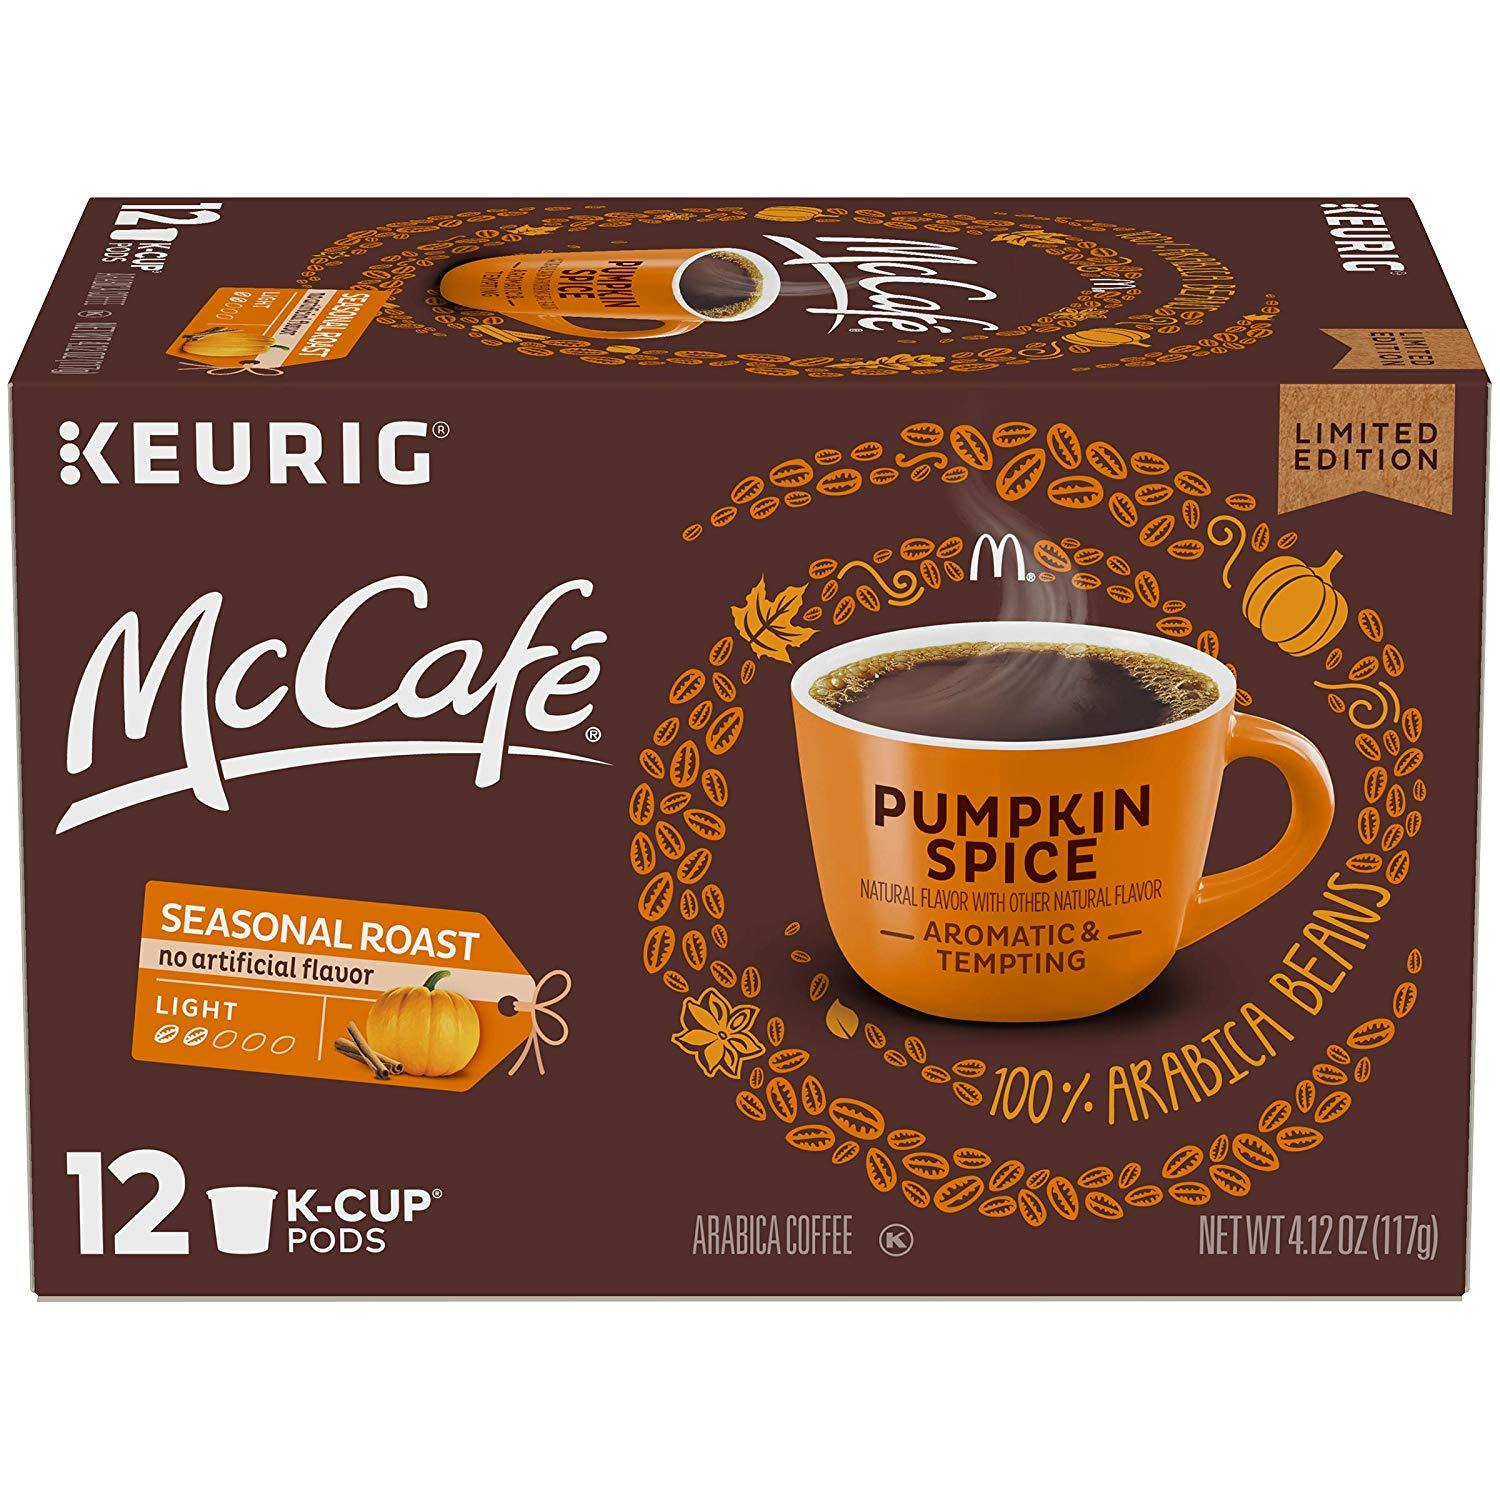 12 McCafe Pumpkin Spice Coffee K-Cups for $3.52 Shipped